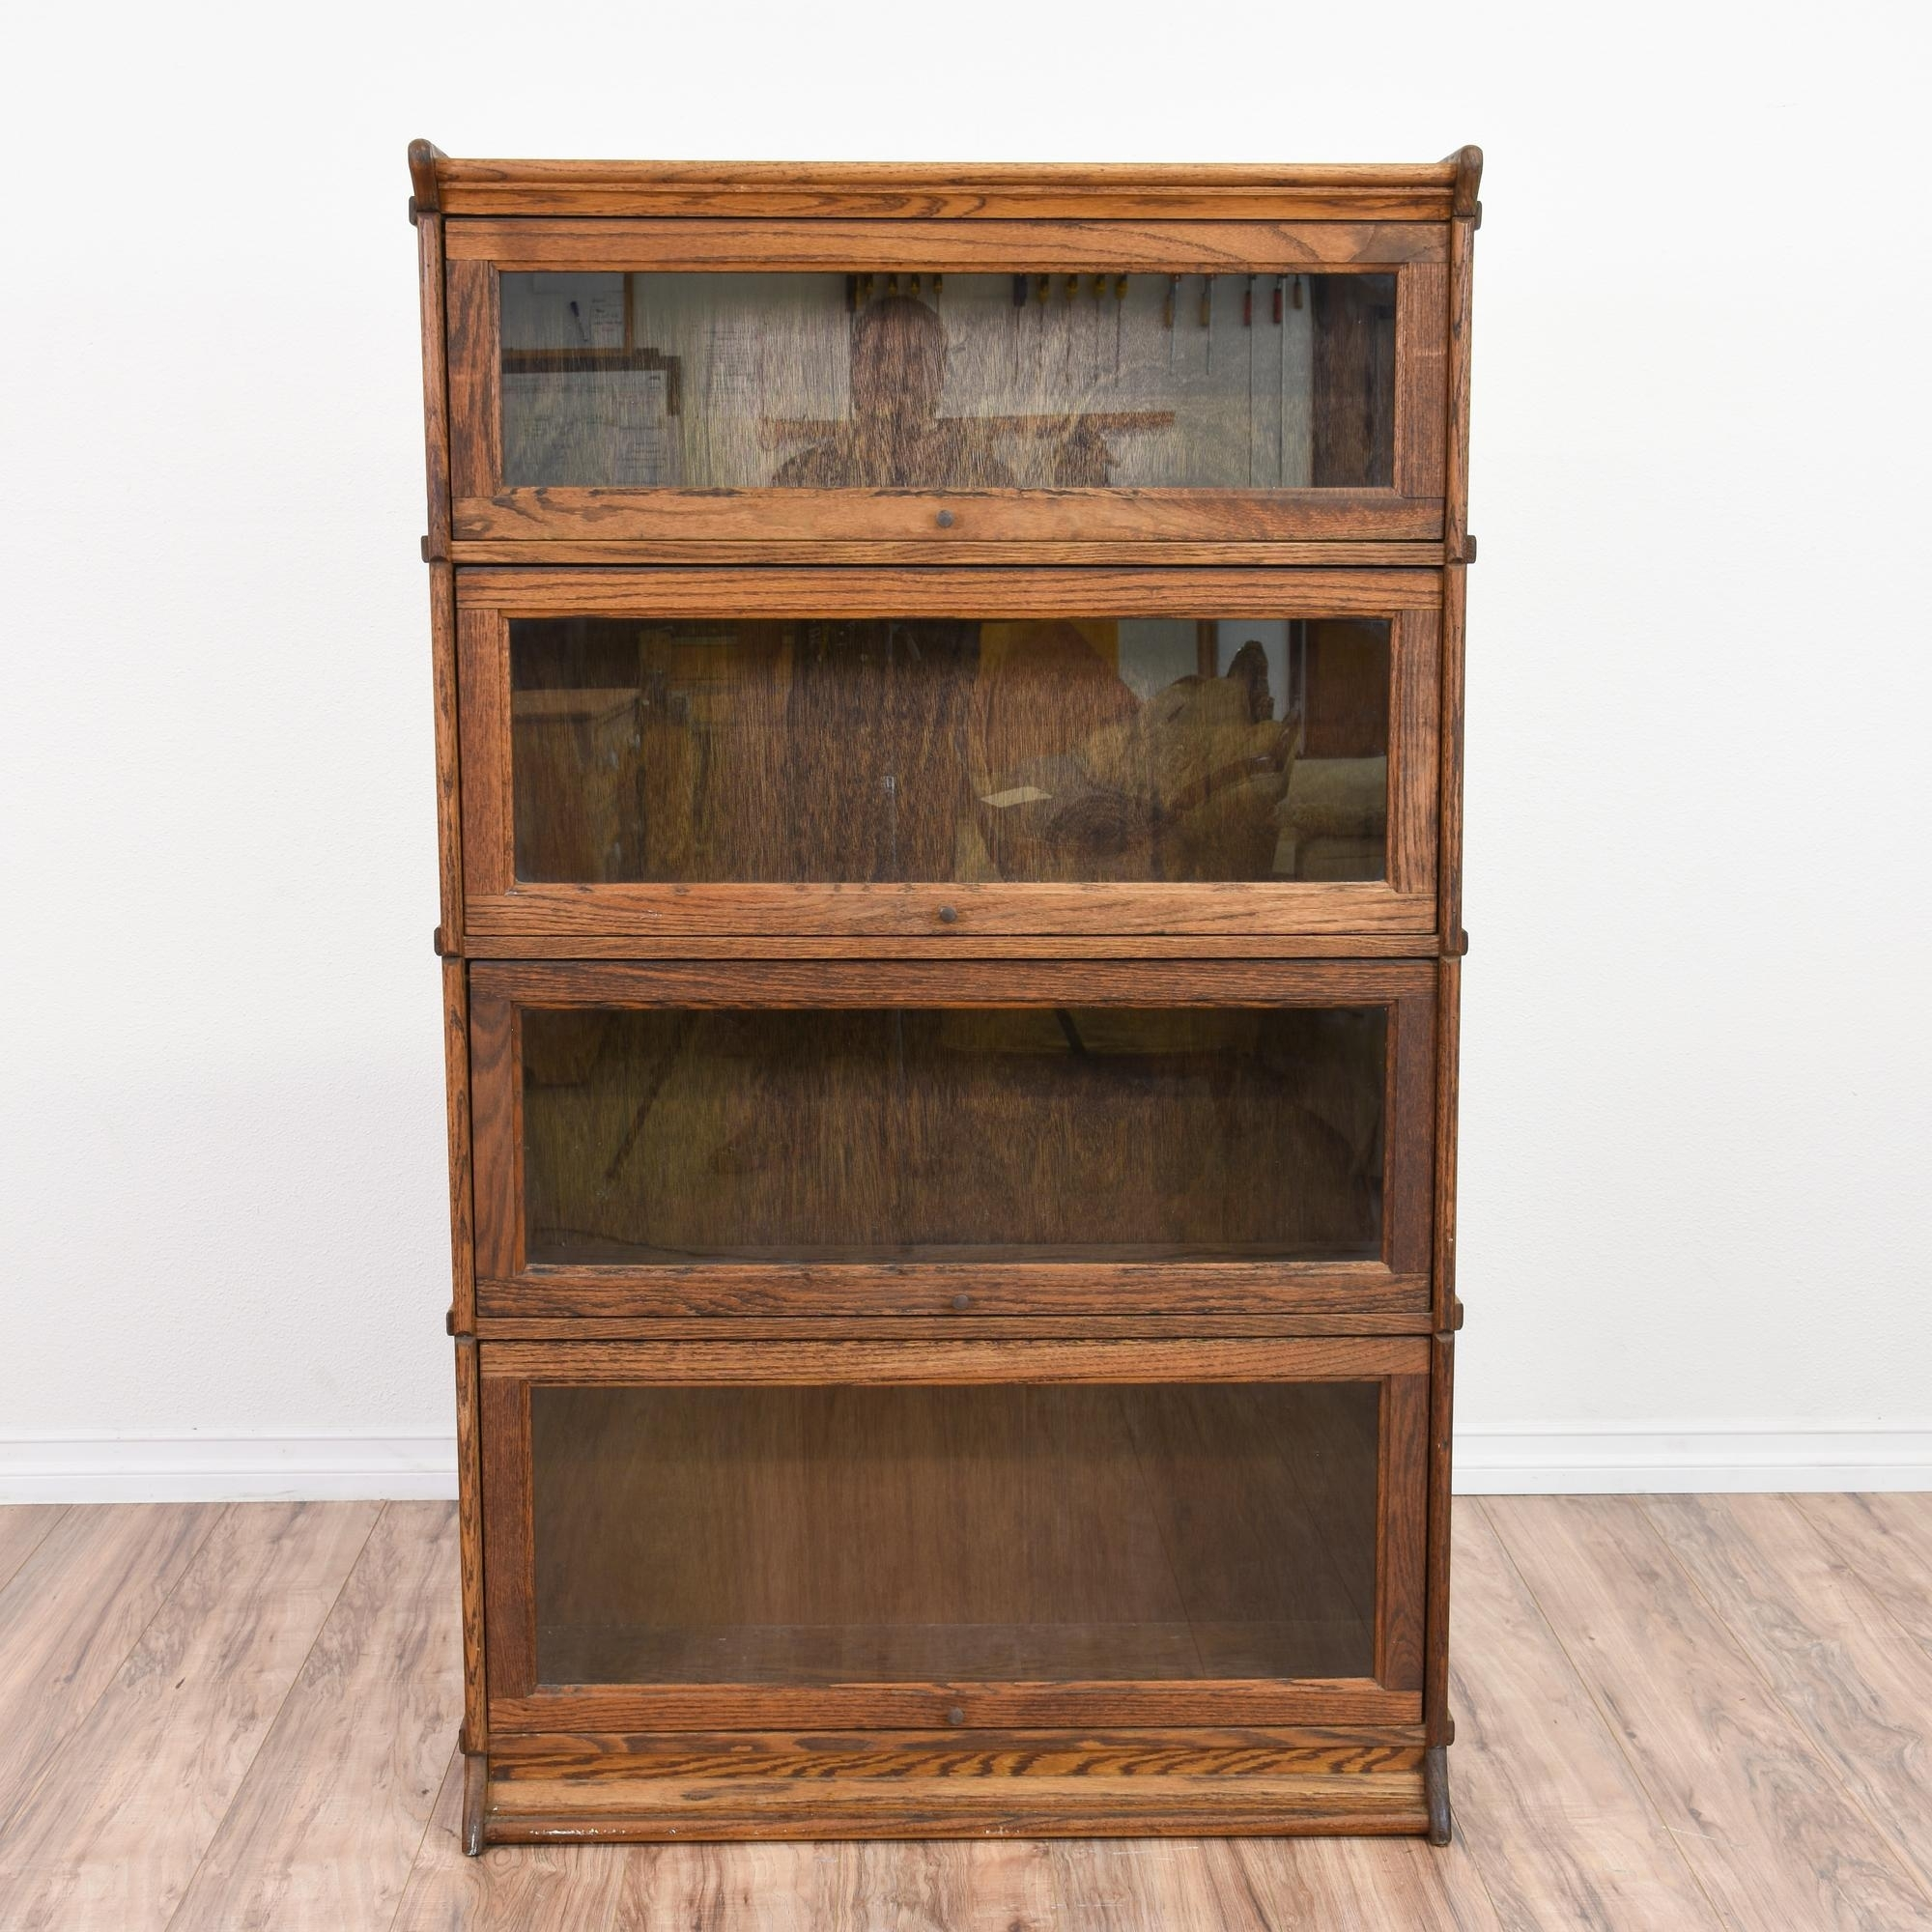 Bookcases With Cupboard Within Favorite This Rustic Lawyers Bookcase Is Featured In A Solid Wood With A (View 6 of 15)